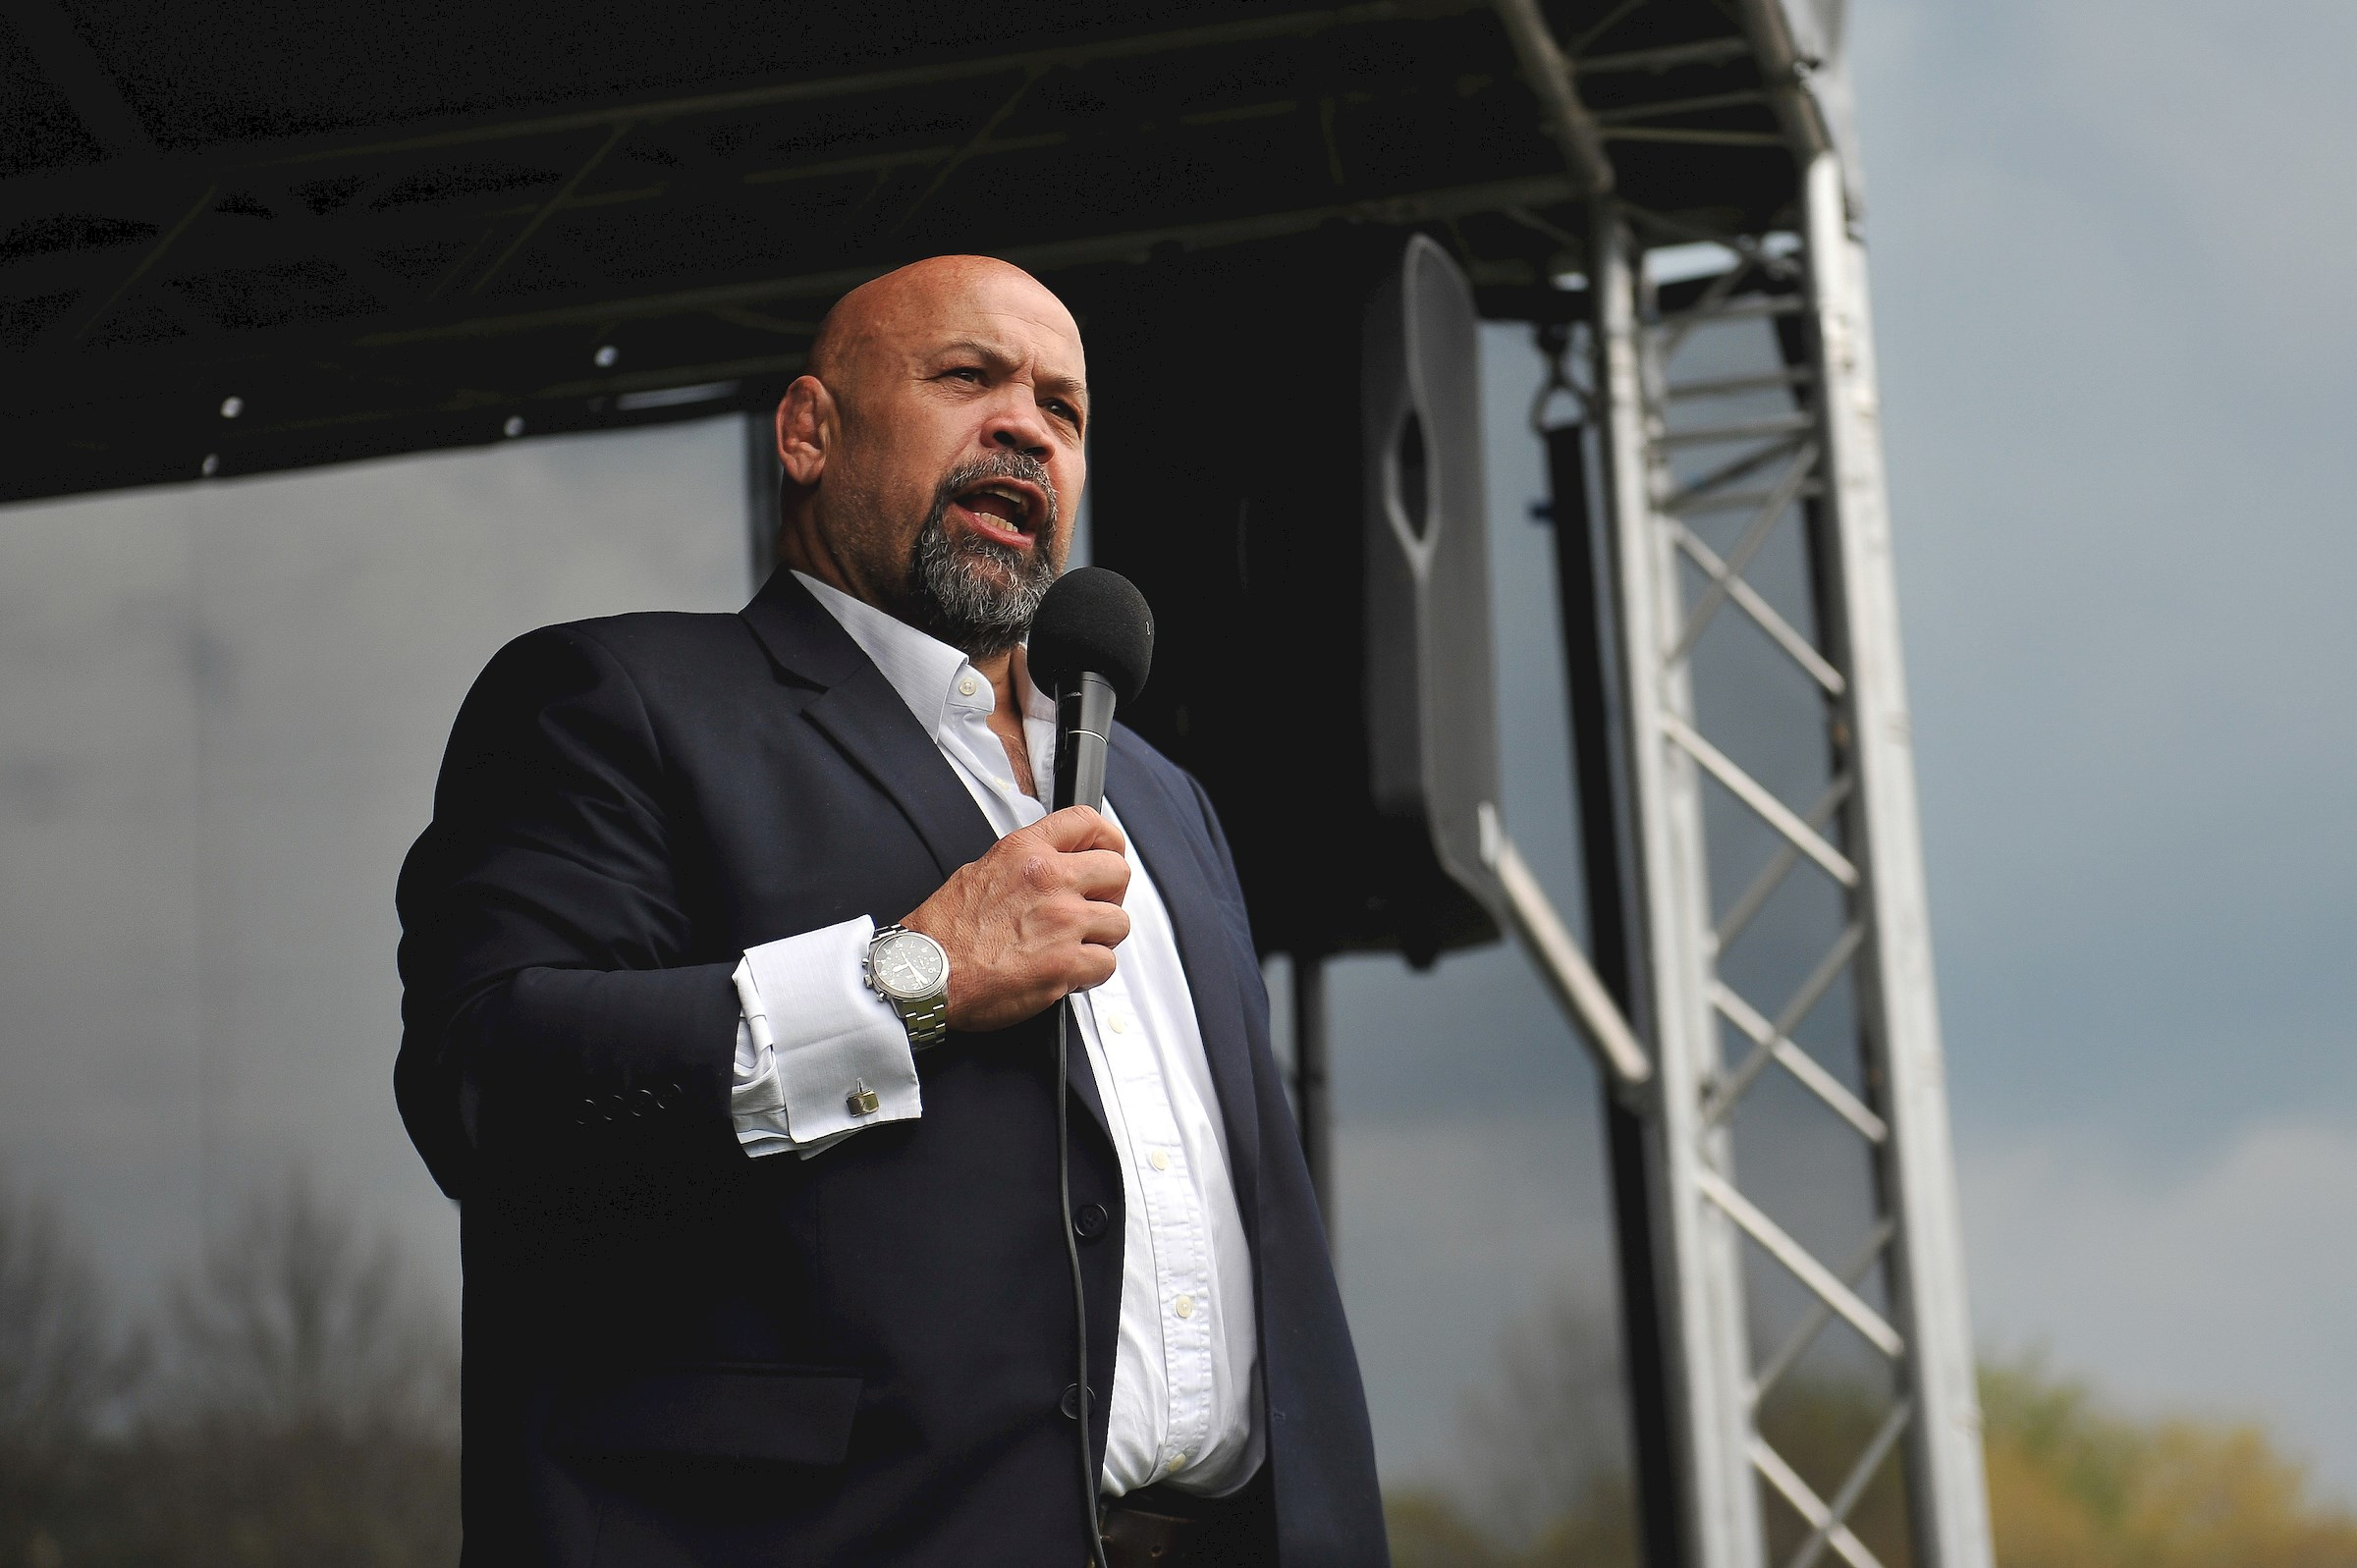 Gareth Chilcott guest speaker for West Country derby against Gloucester